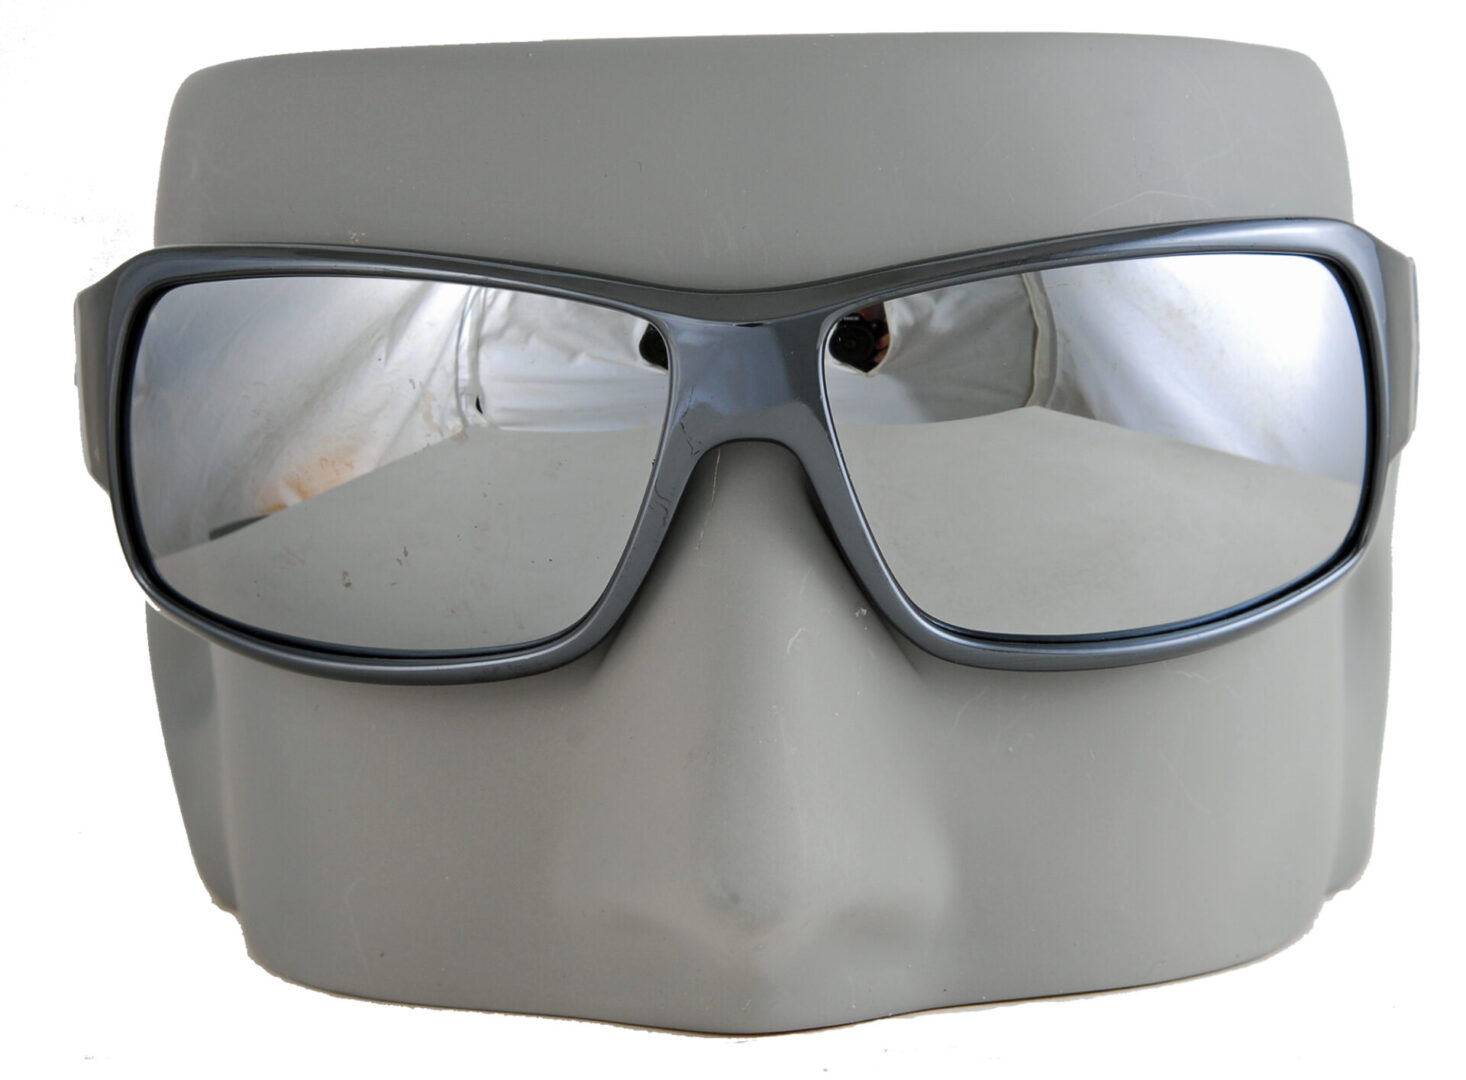 Dark silver shades with reflective lenses